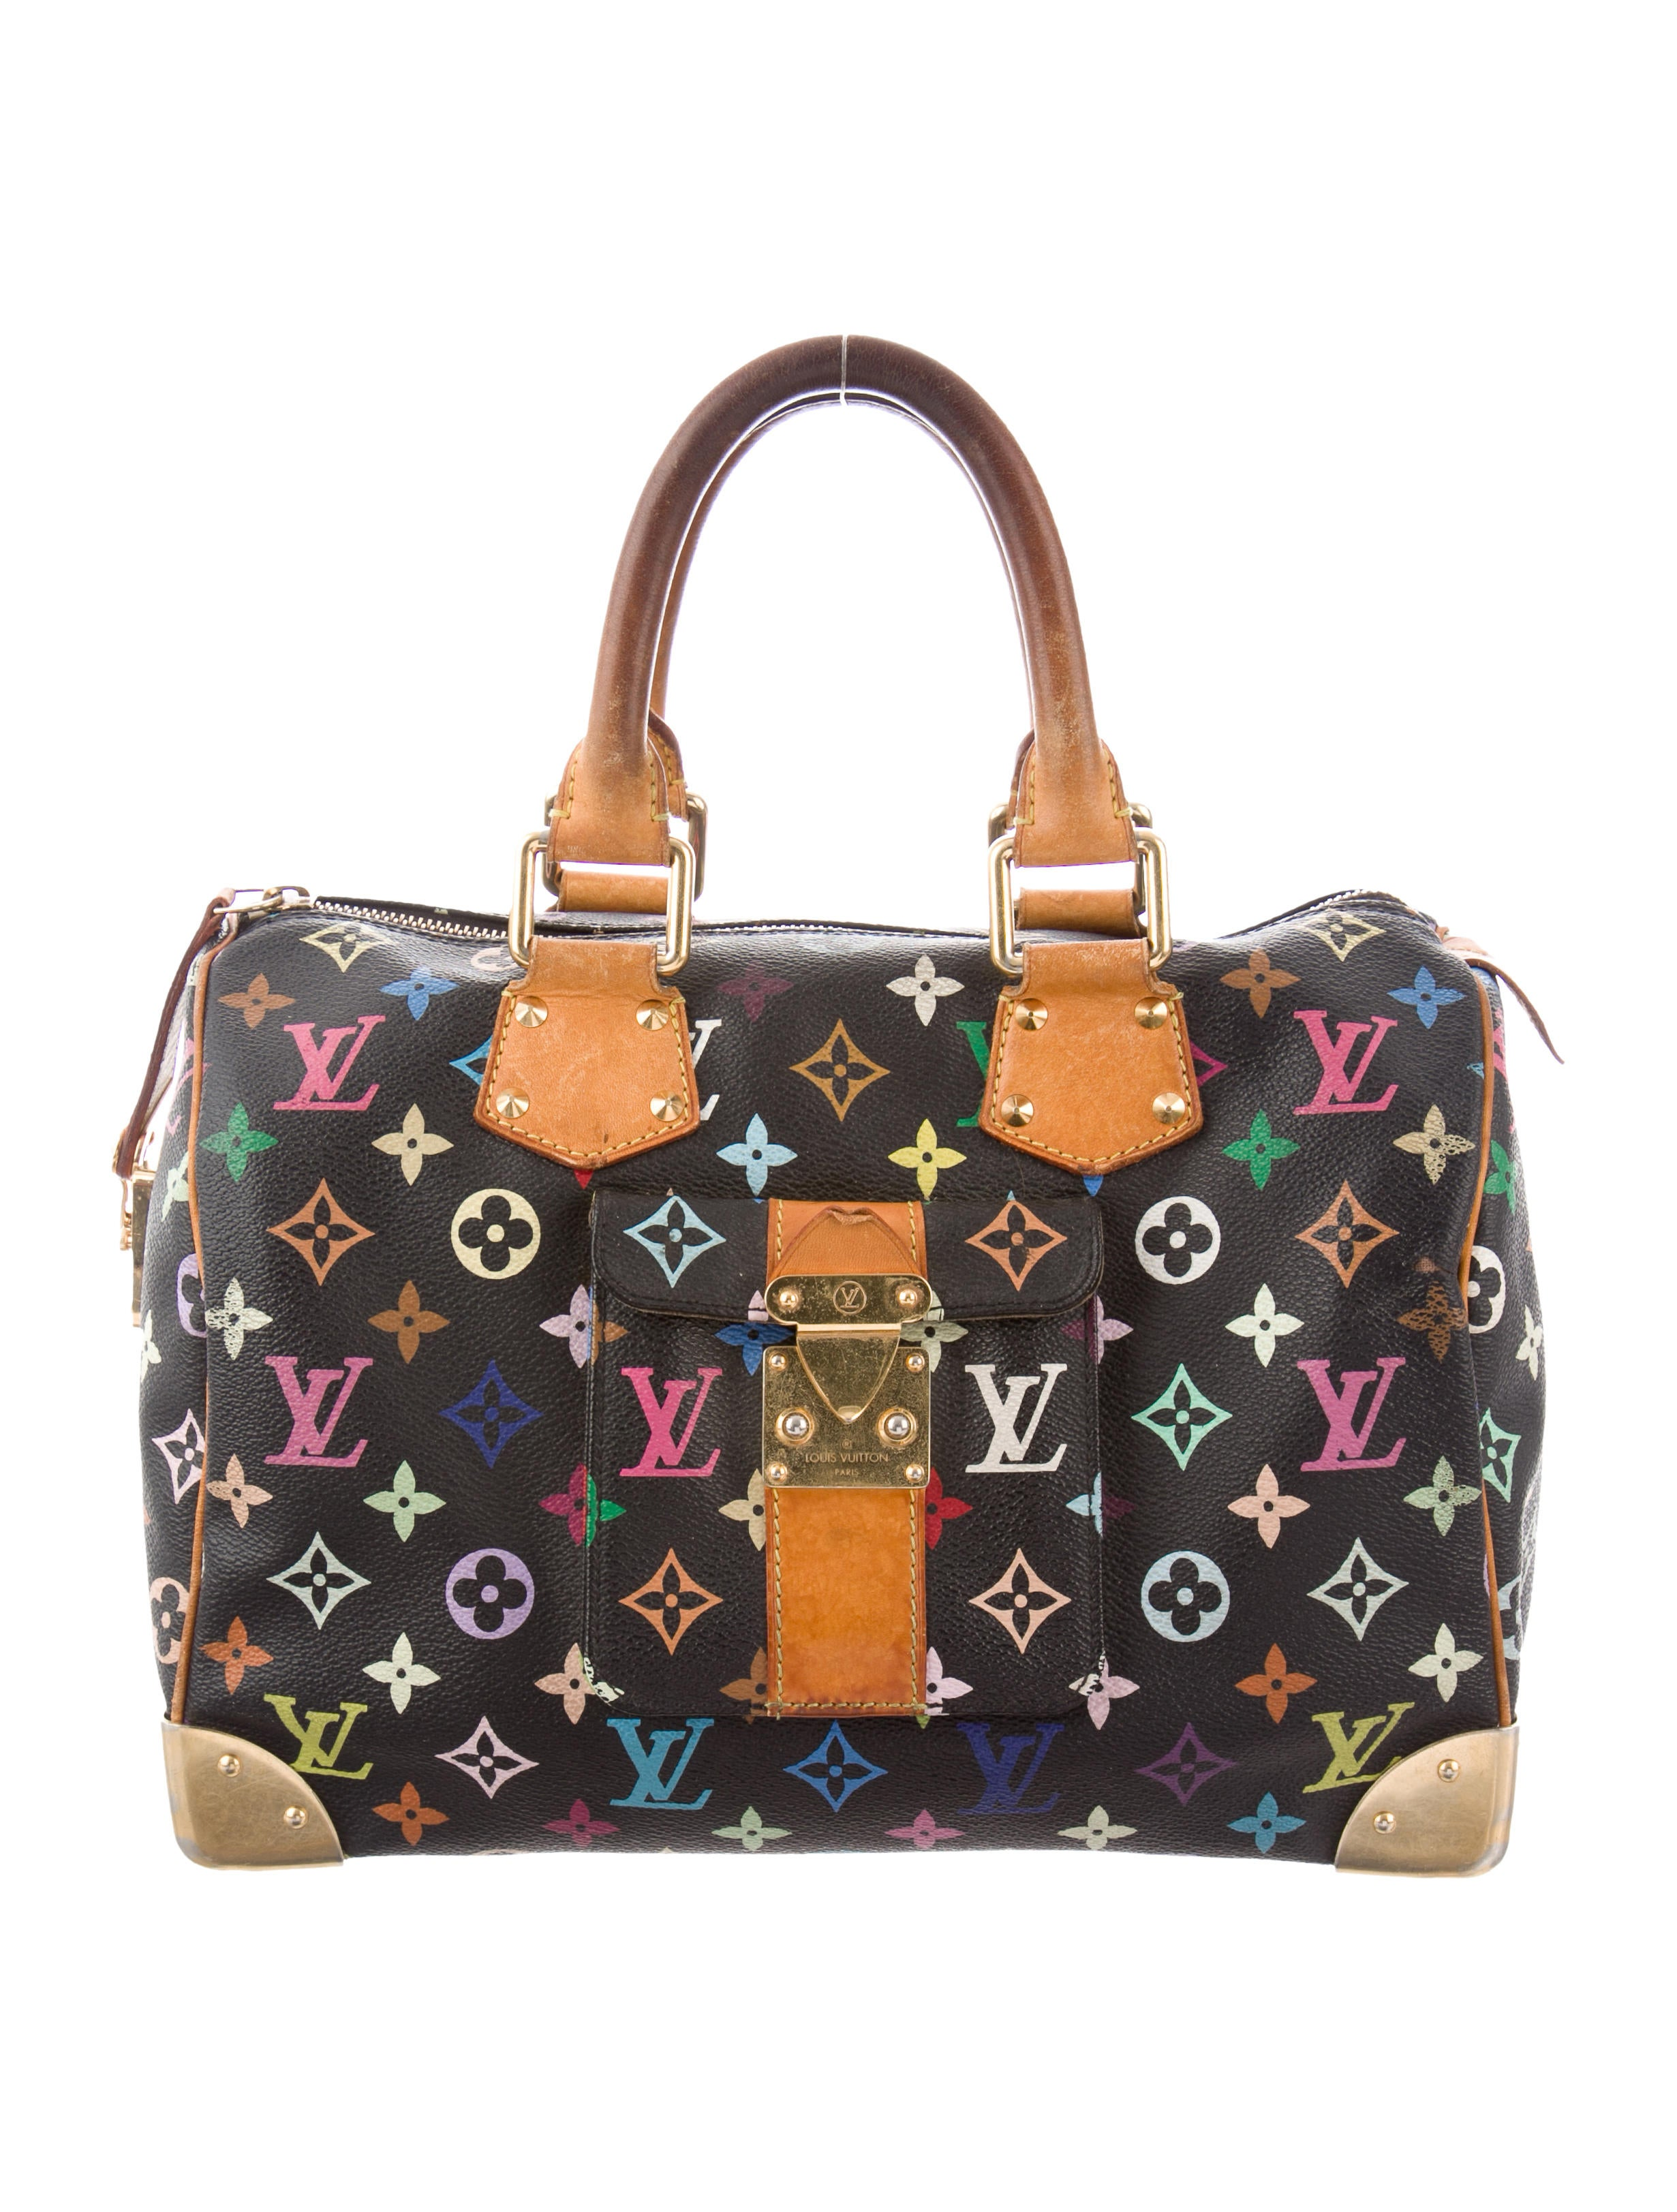 5ecfe25c2d7 Louis Vuitton Speedy